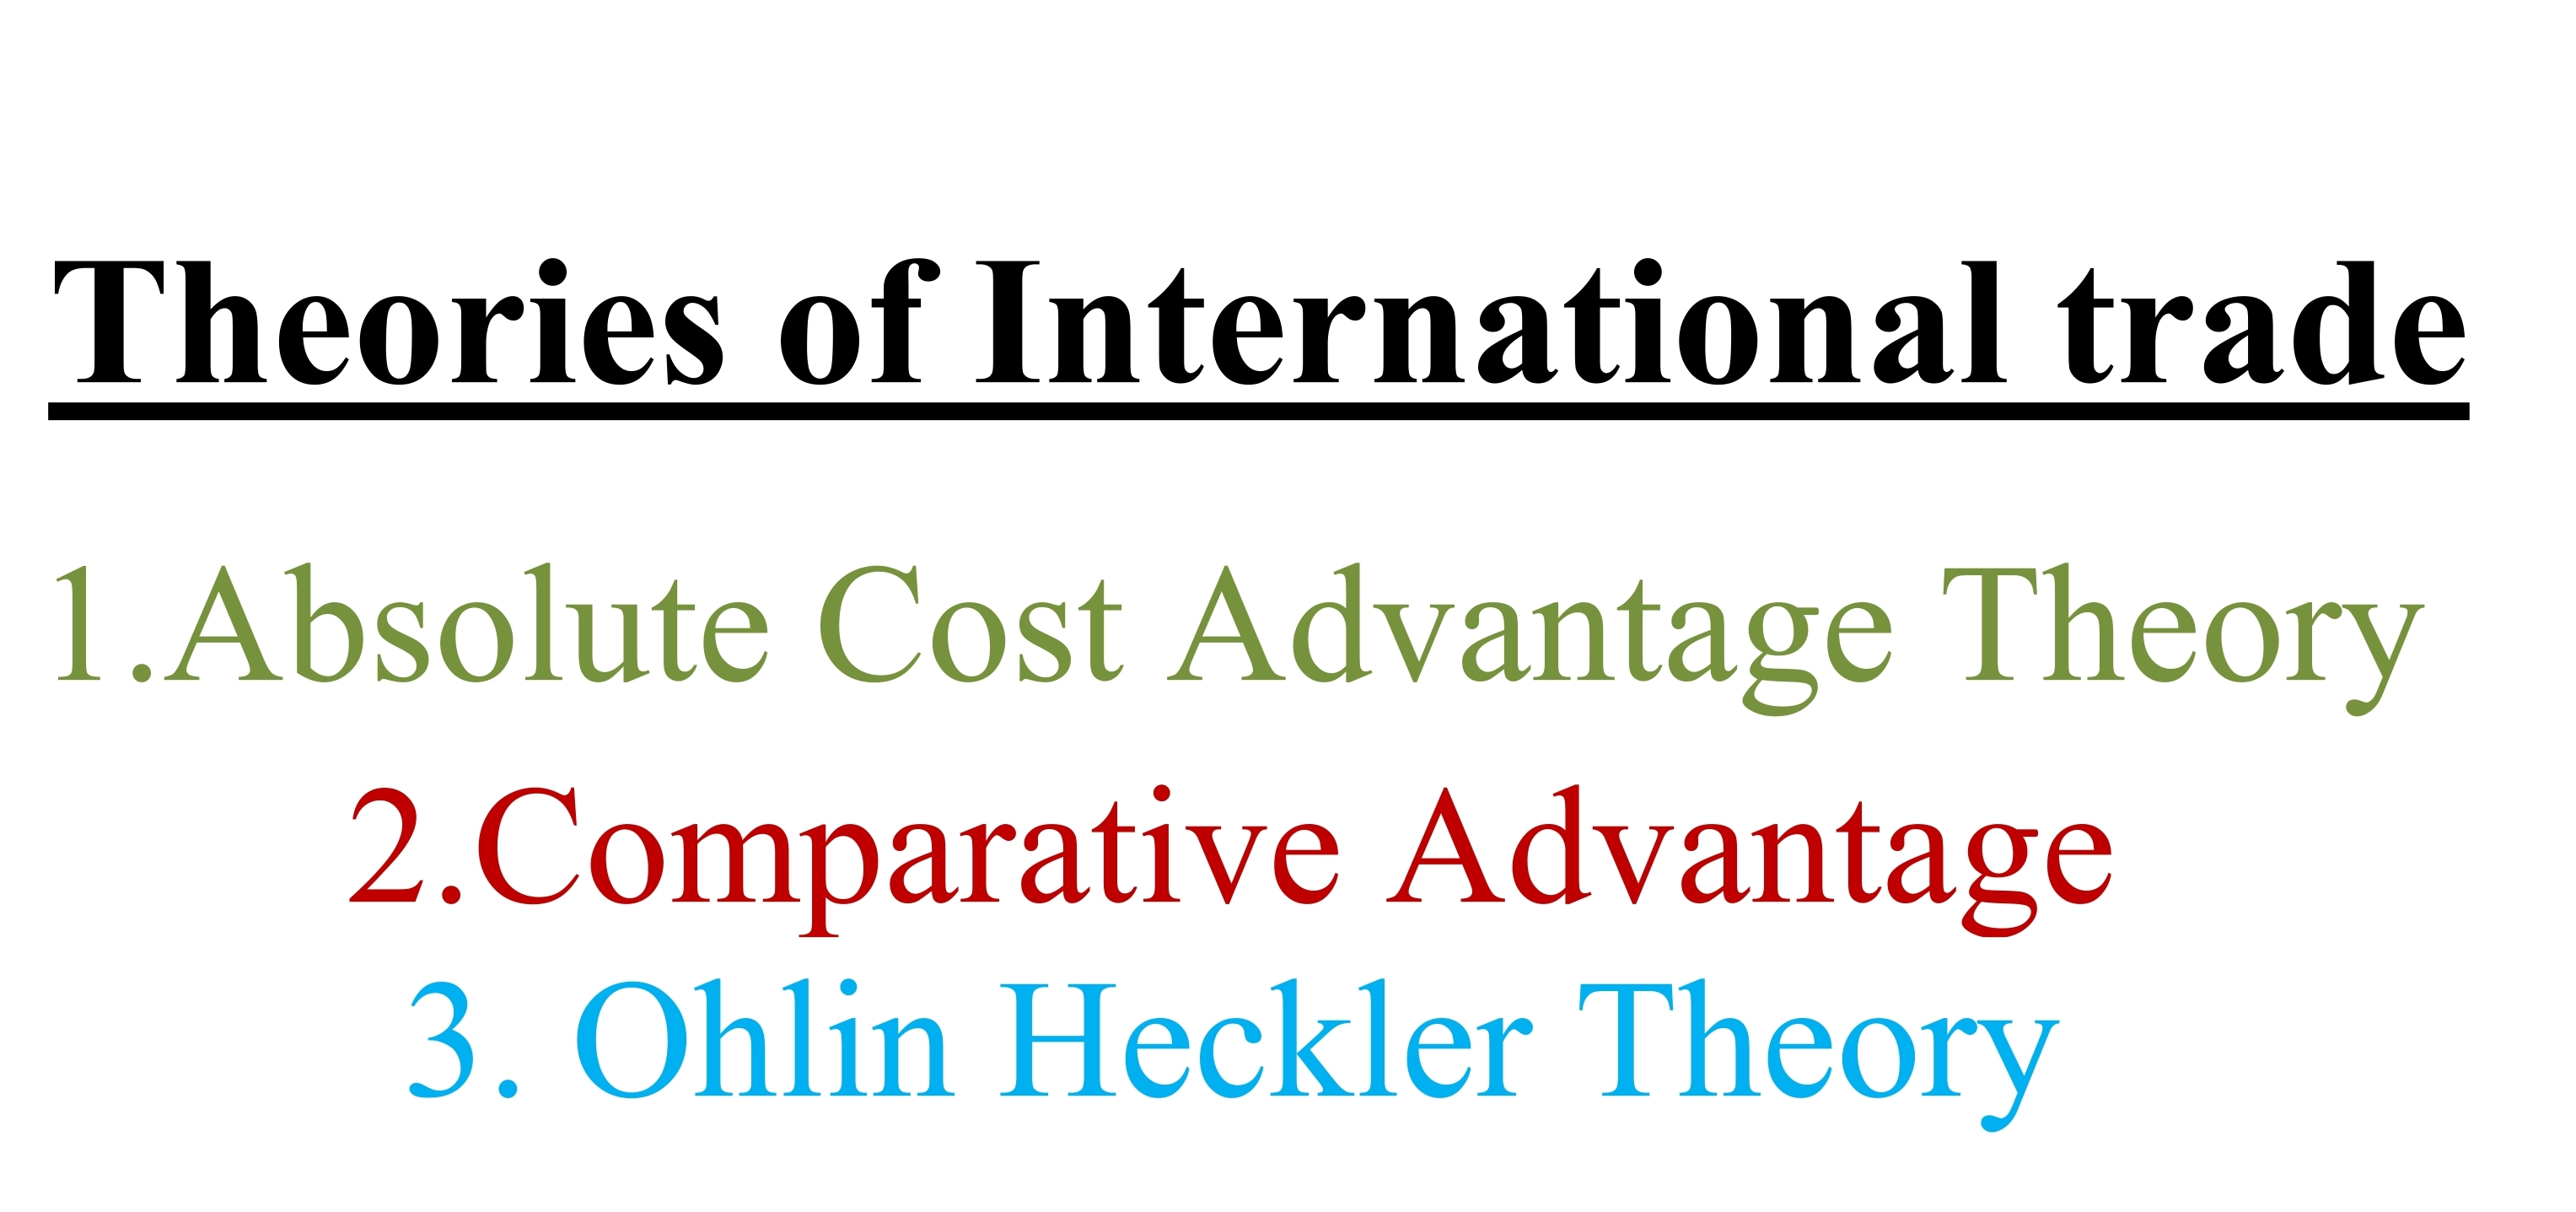 notes on theories An outline of 7 international trade theories - mercantilism, absolute advantage, comparative advantage, heckscher-ohlin, product life-cycle, new trade theories.